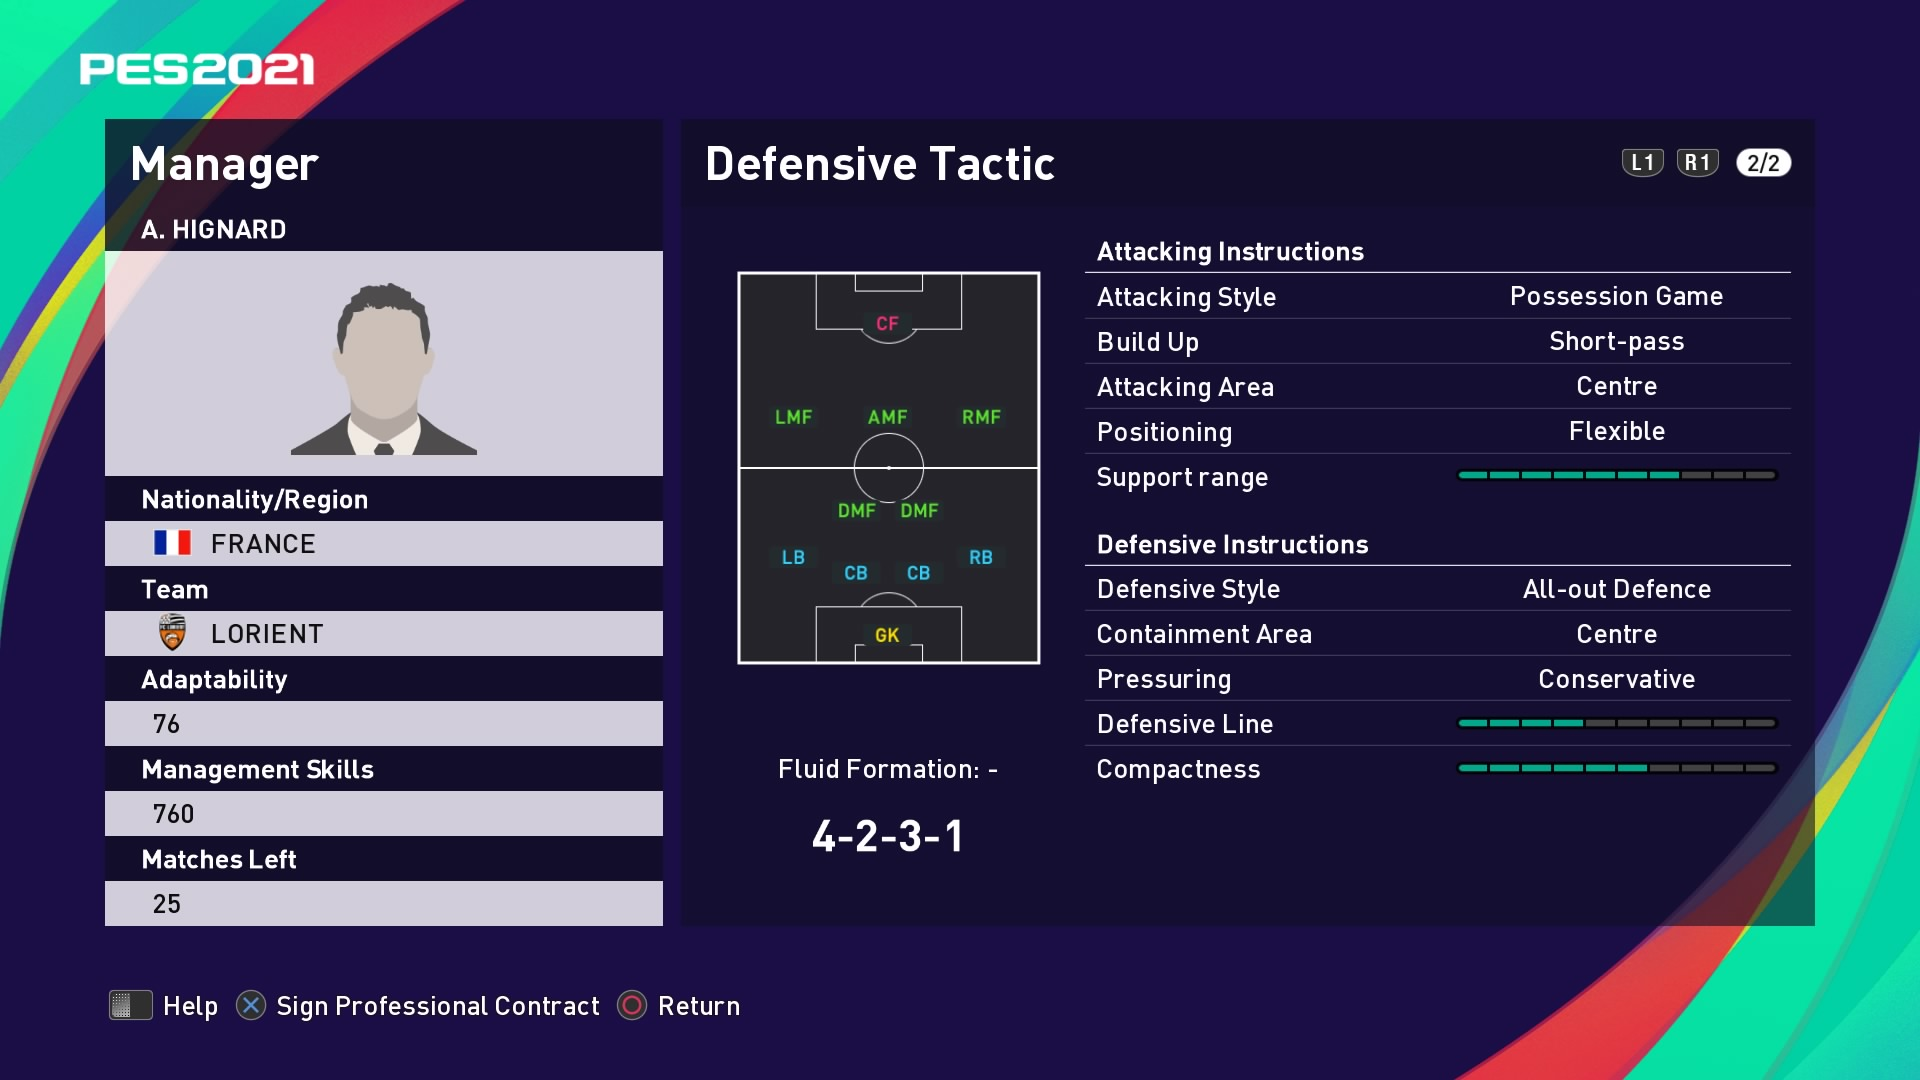 A. Hignard (Christophe Pélissier) Defensive Tactic in PES 2021 myClub